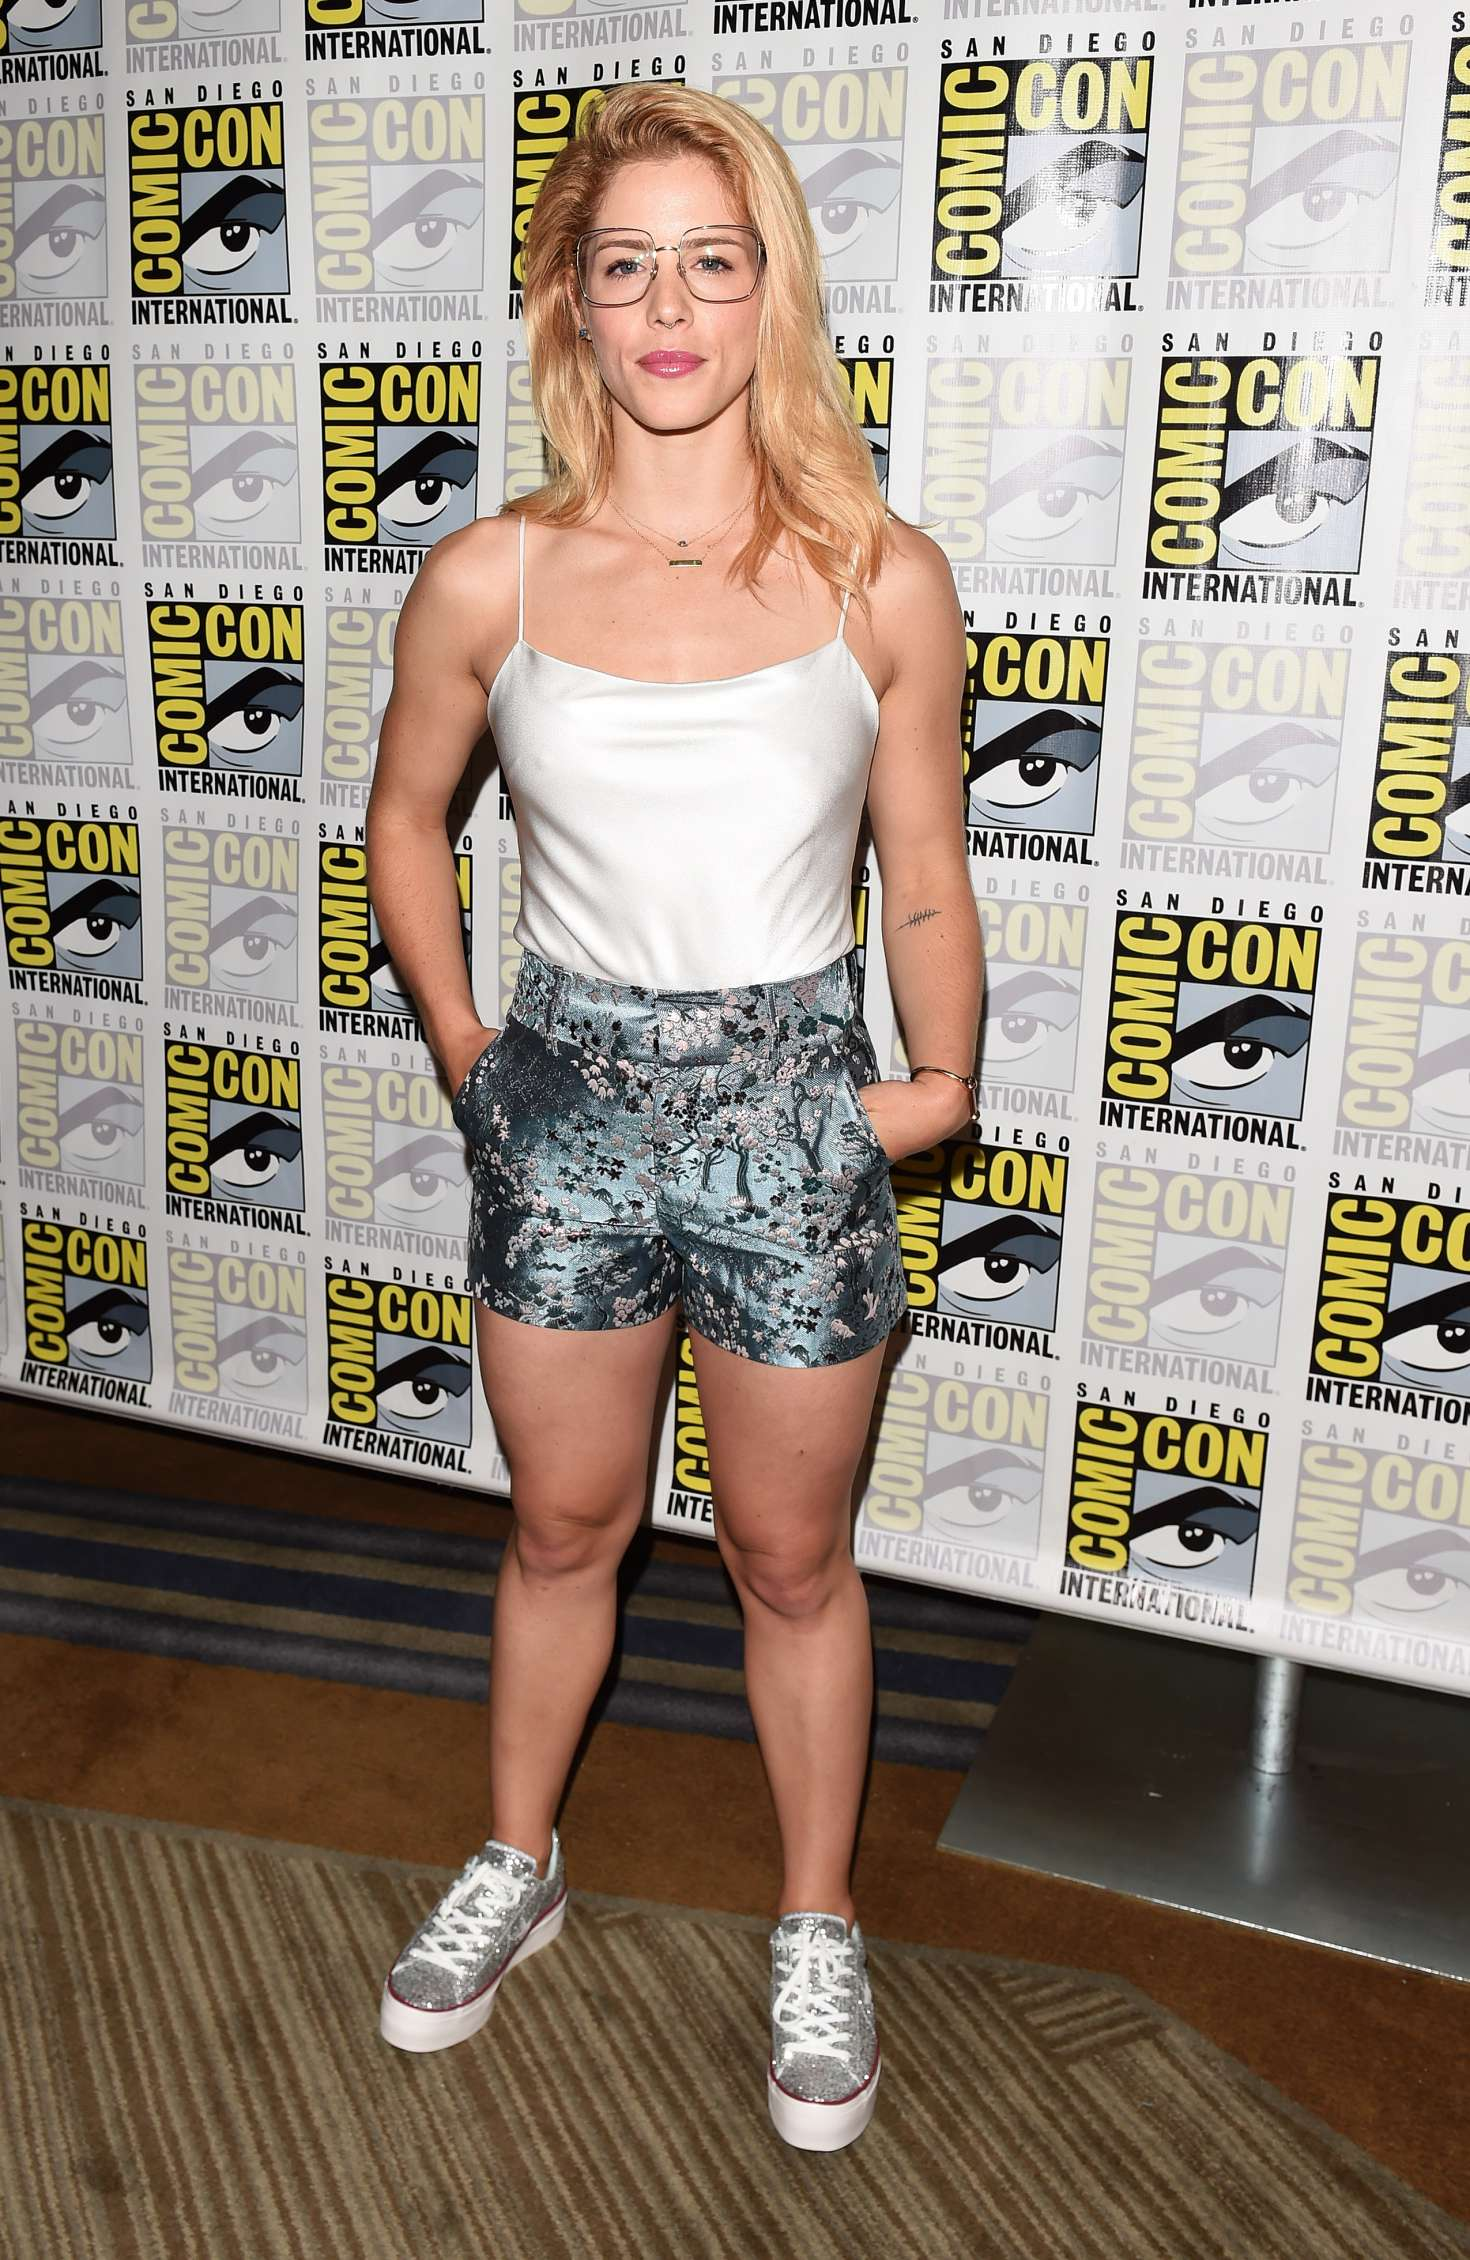 Bett Comic Emily Bett Rickards Arrow Press Call At 2018 Comic Con 06 Gotceleb